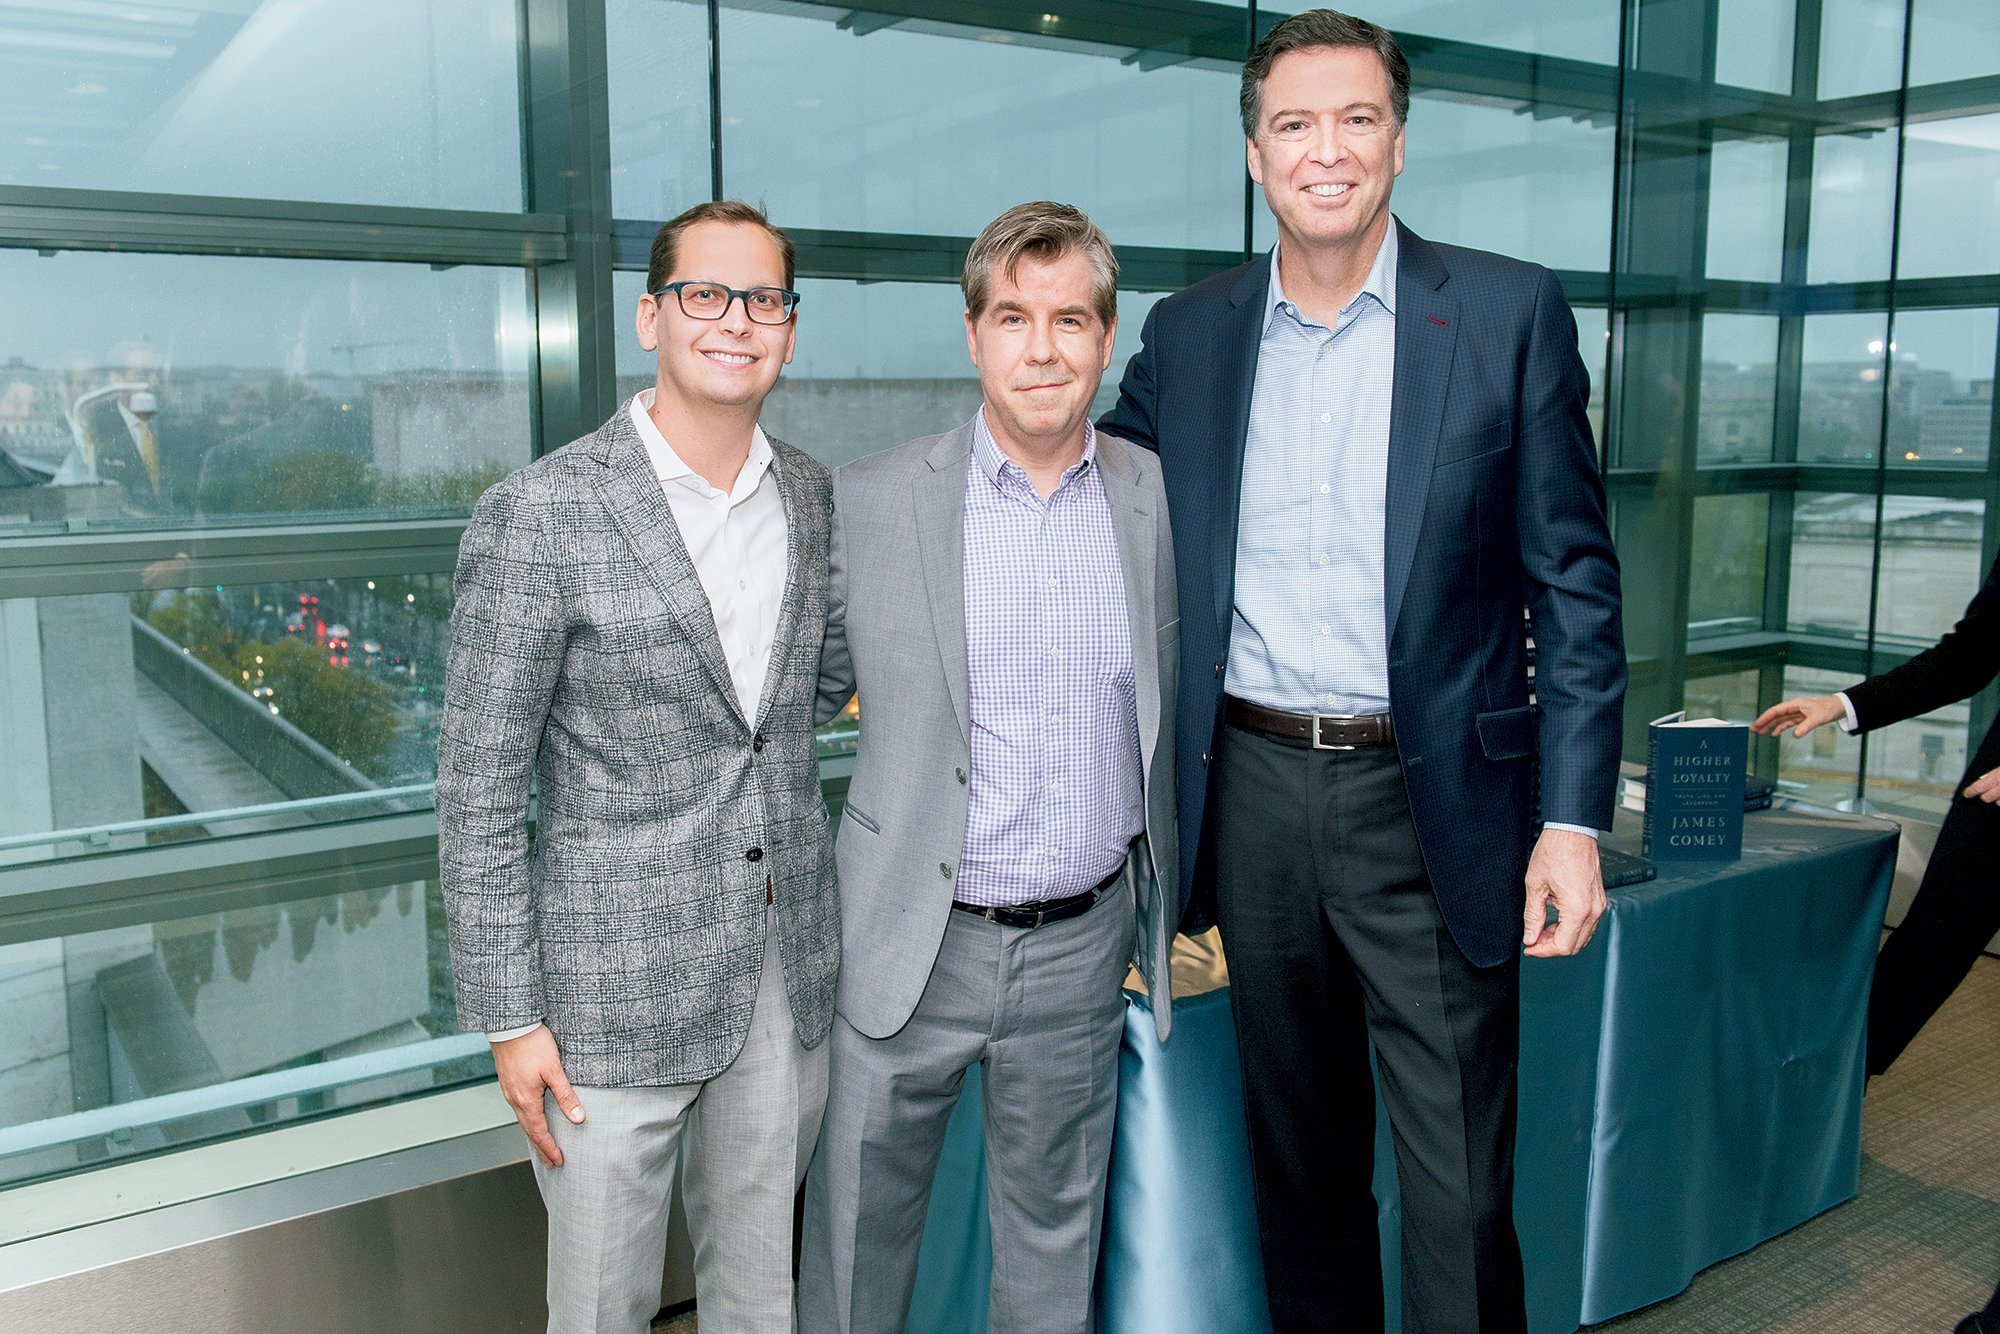 Javelin's Keith Urbahn and Matt Latimer with James Comey. Photograph by Dan Swartz.